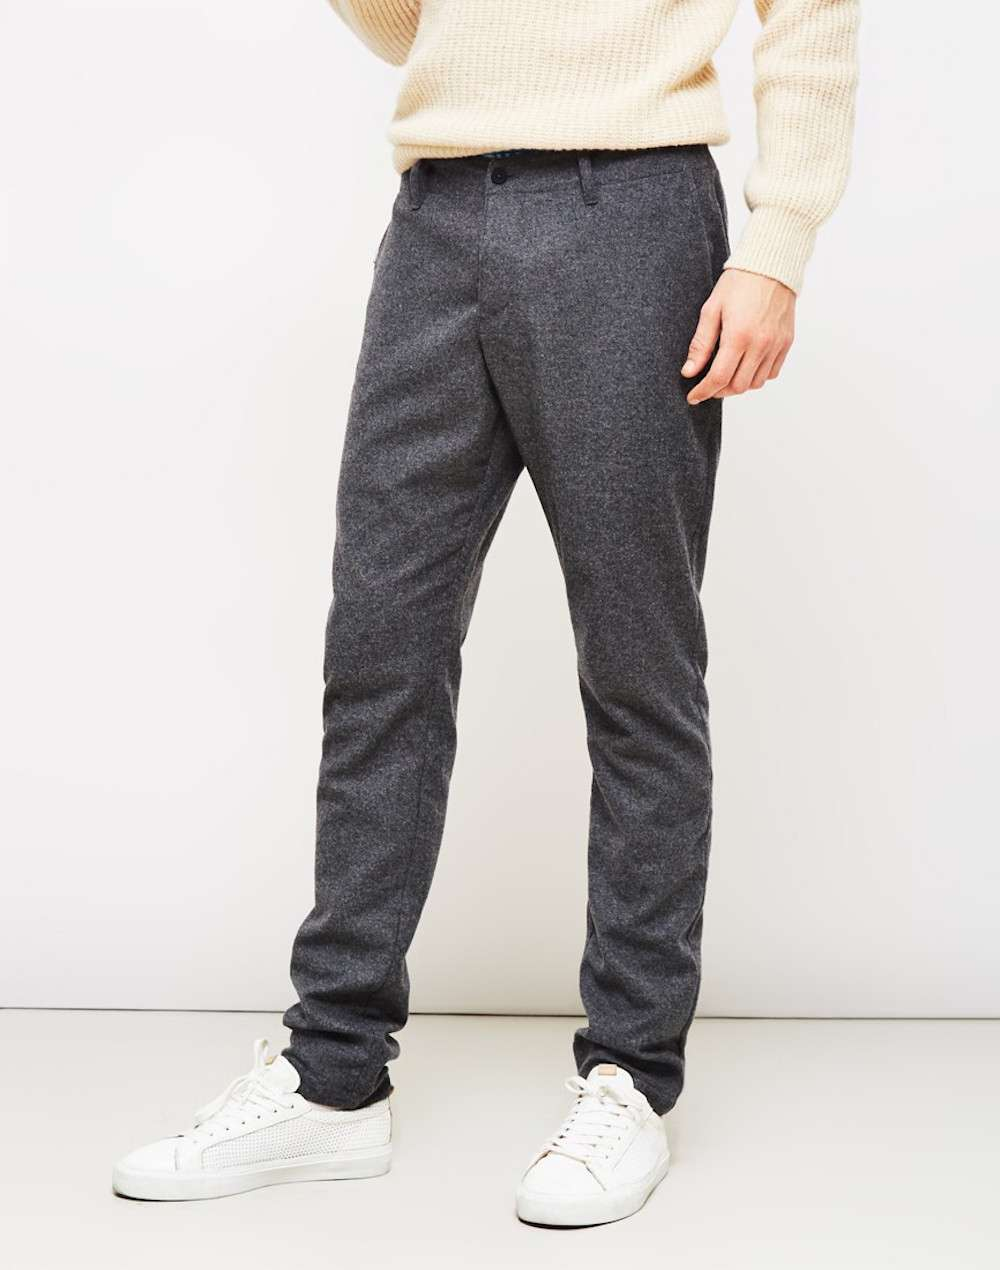 YMC Grey Trousers men